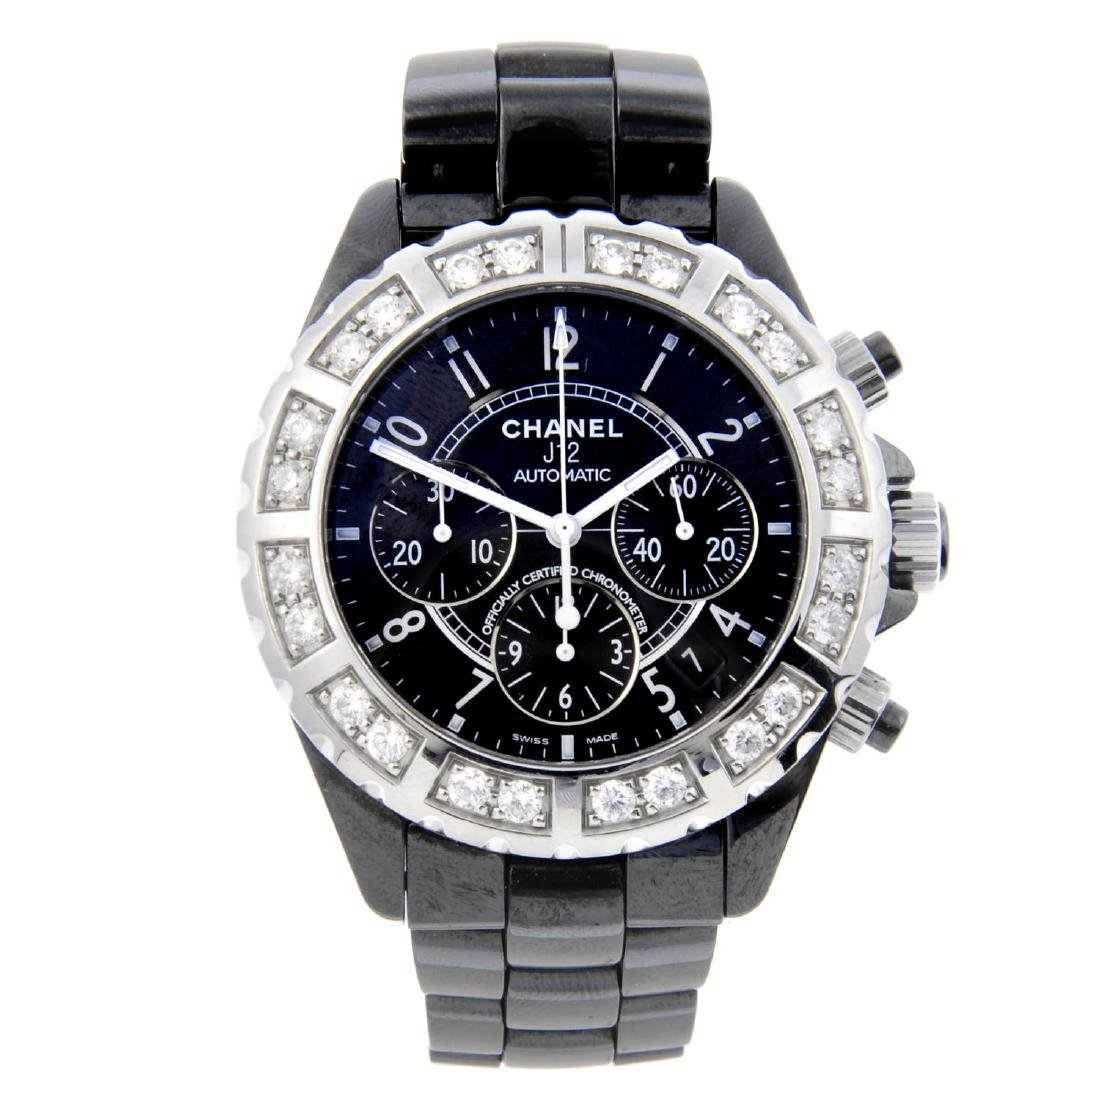 CHANEL - a gentleman's J12 chronograph bracelet watch.